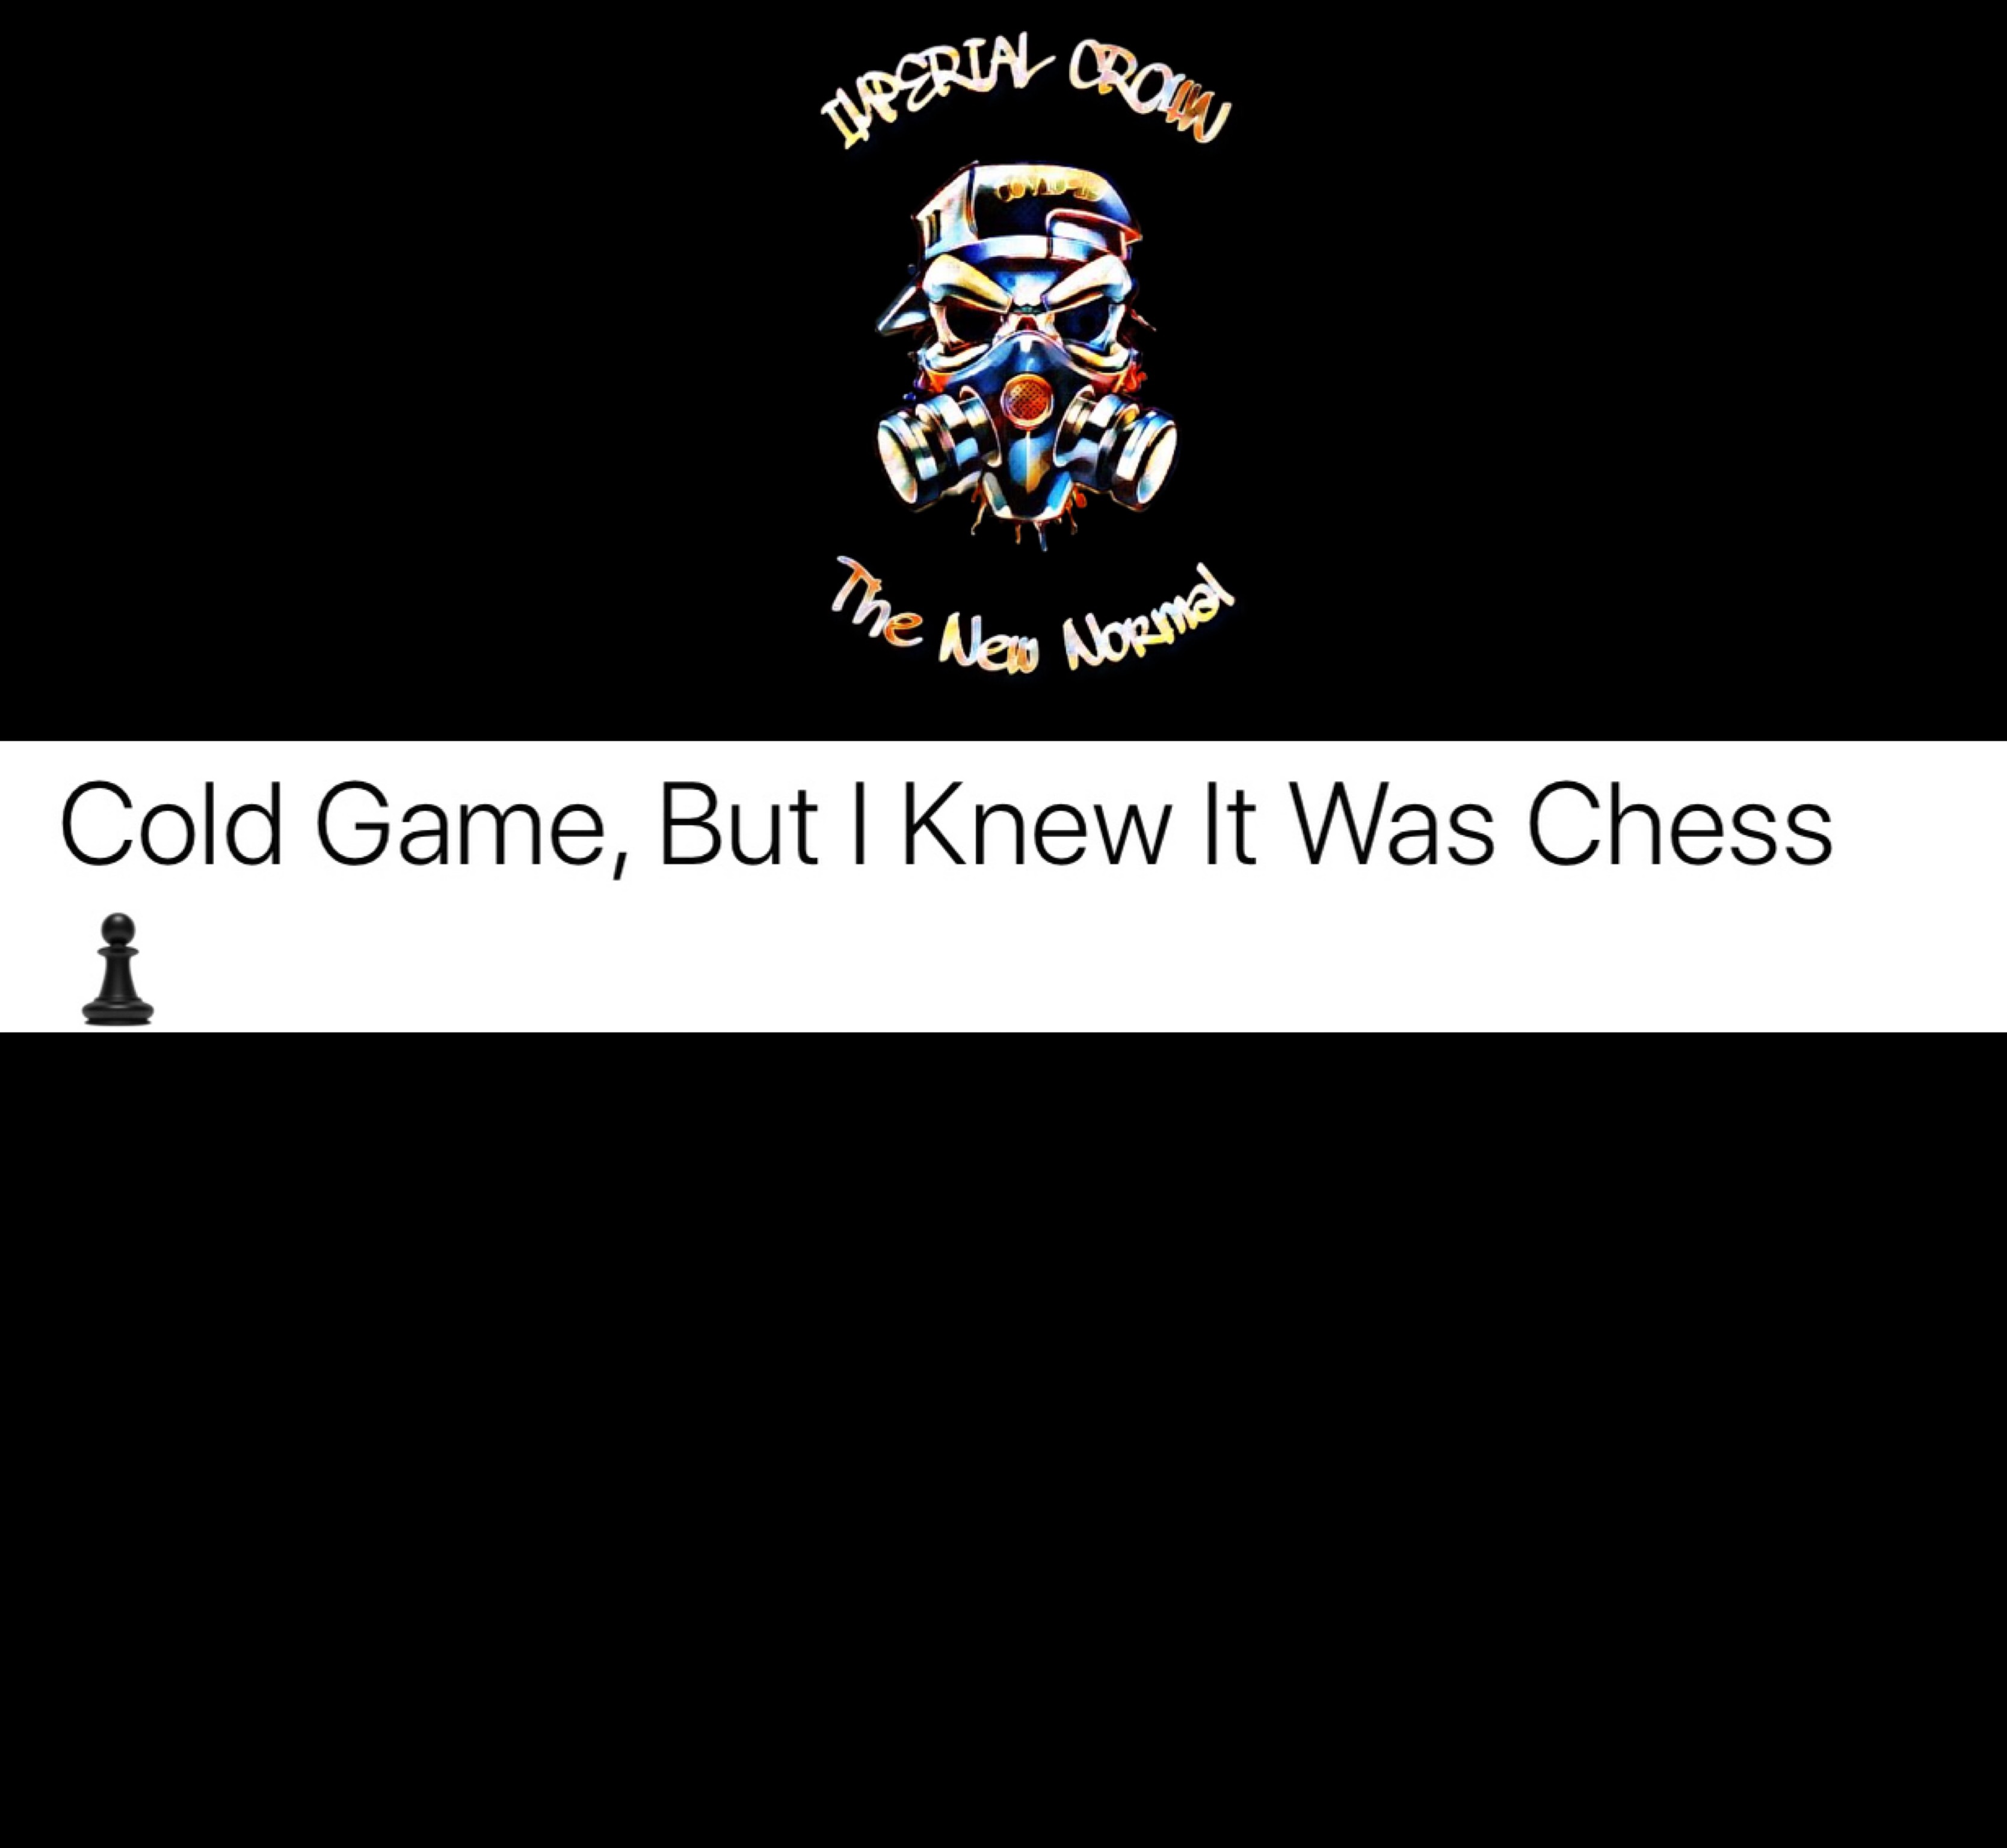 Cold game but I knew it was chess